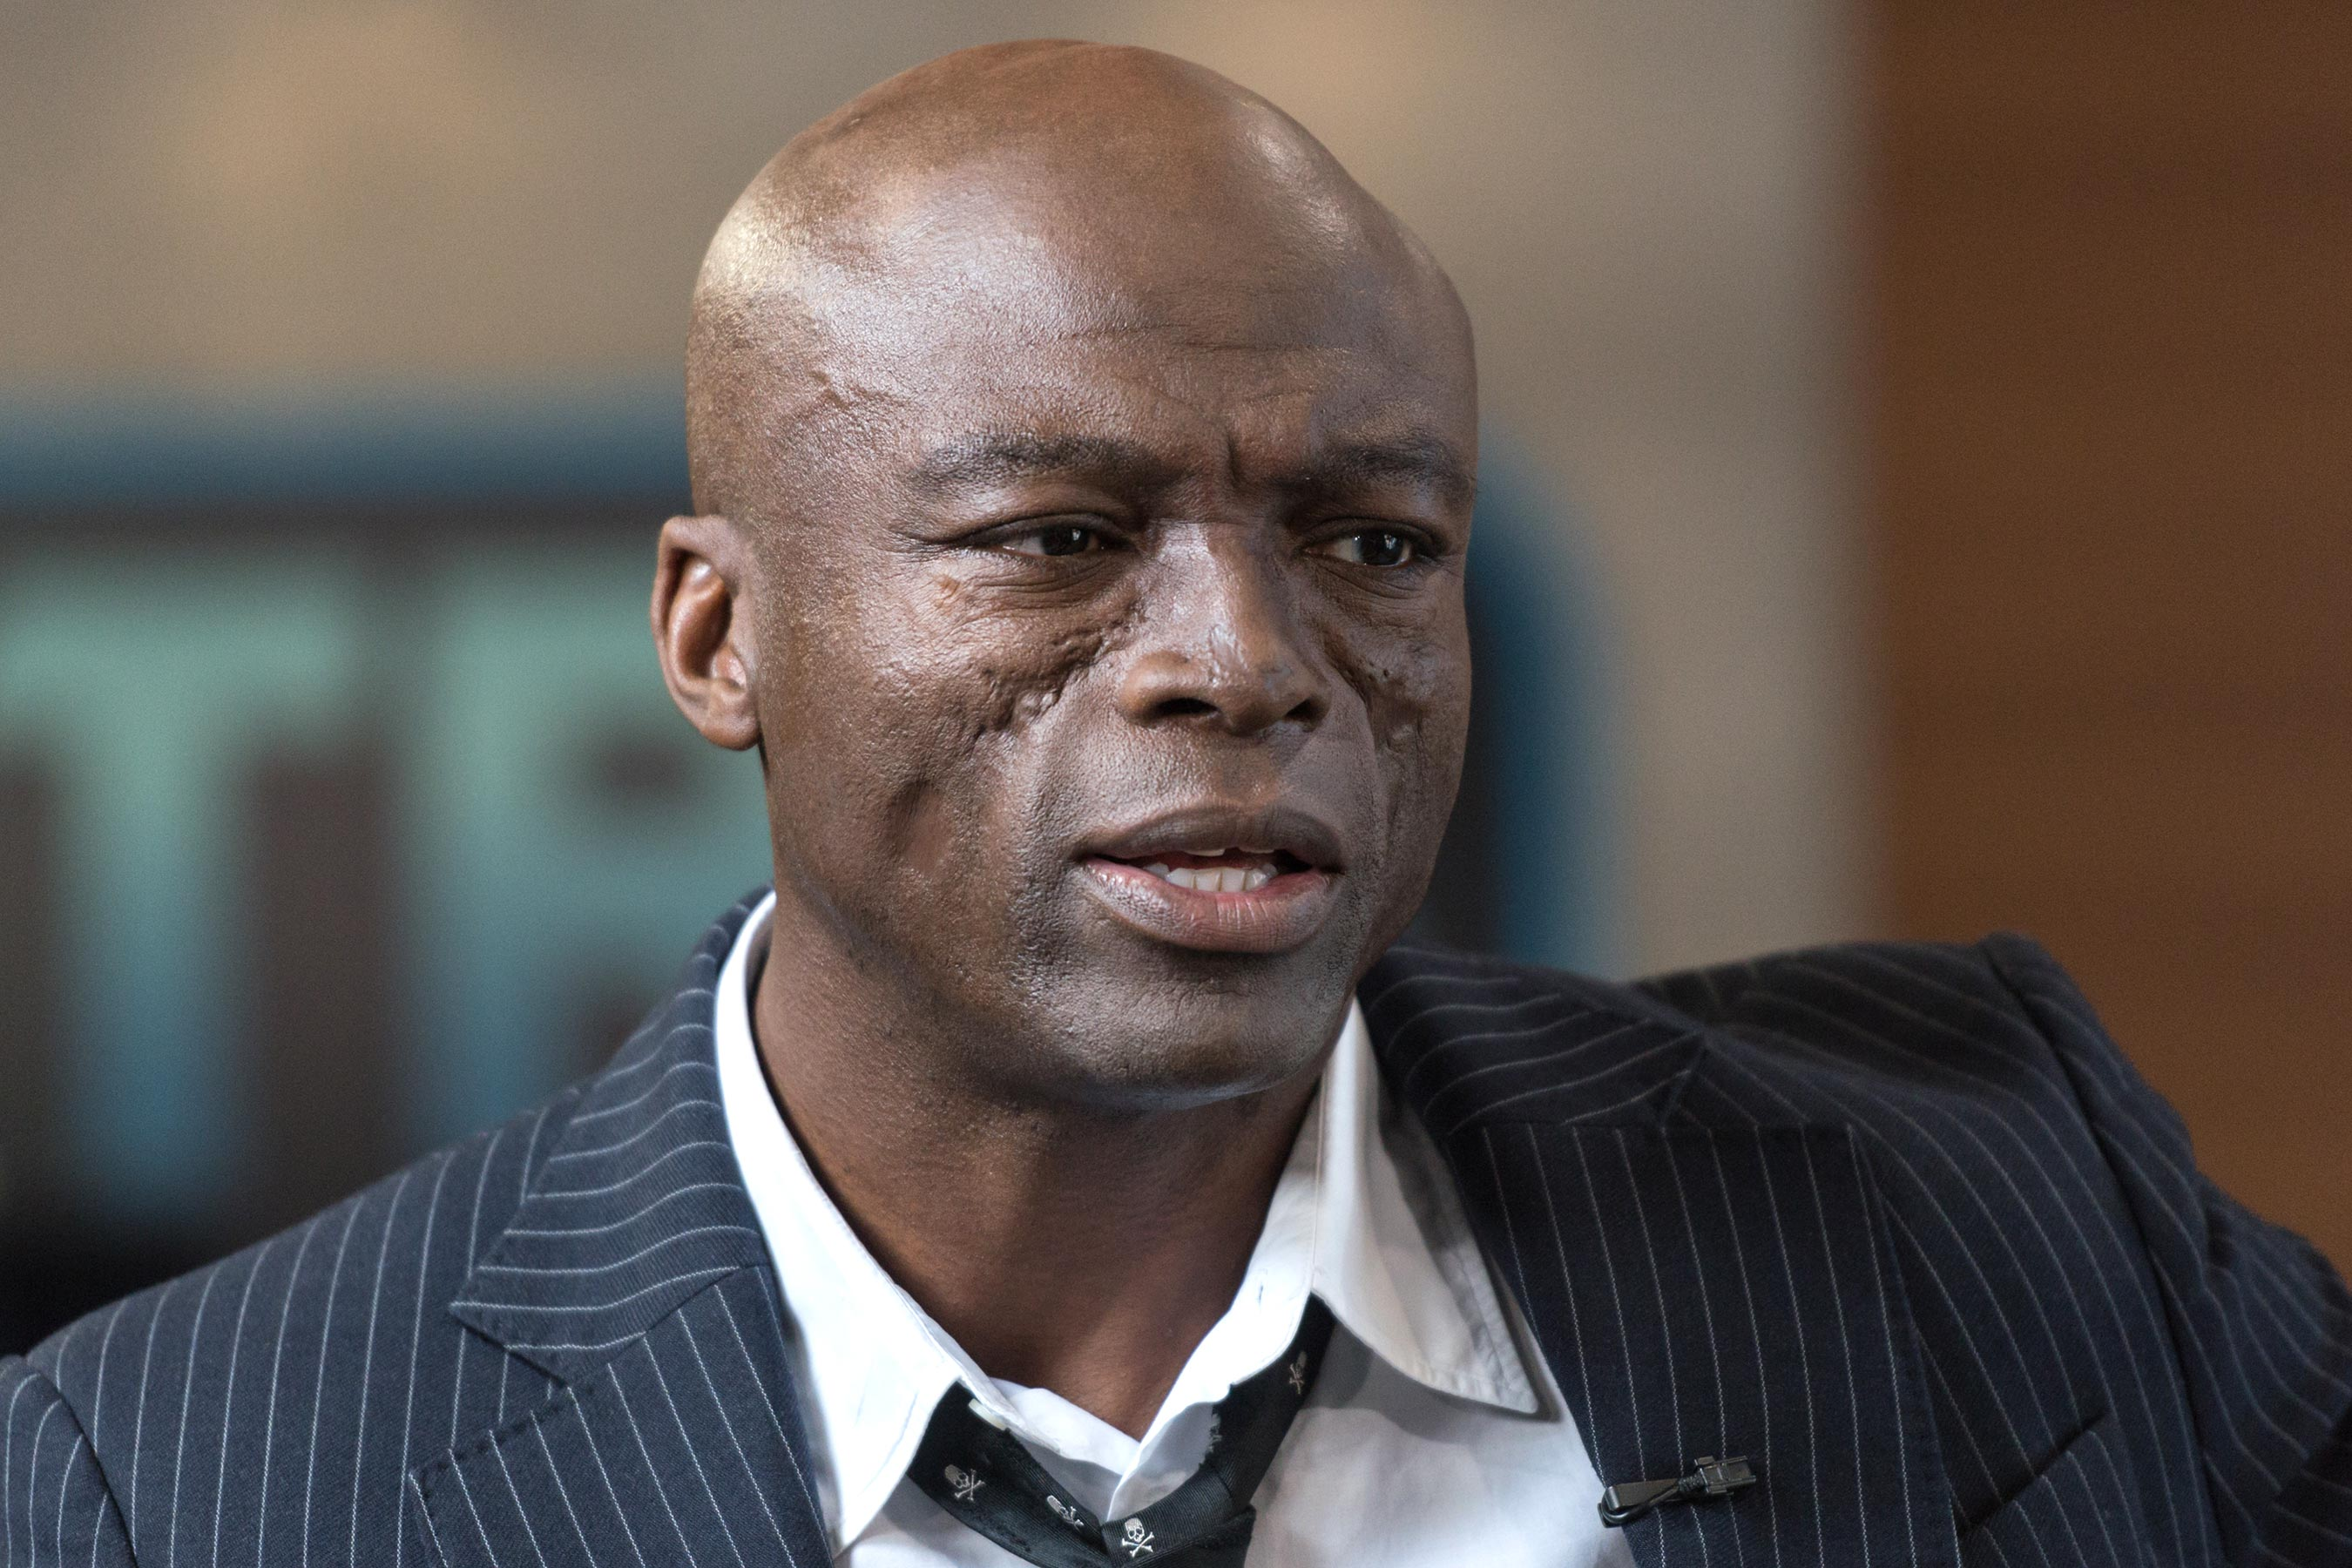 Sexual assault case against Seal rejected by L.A. District Attorney's office: Report